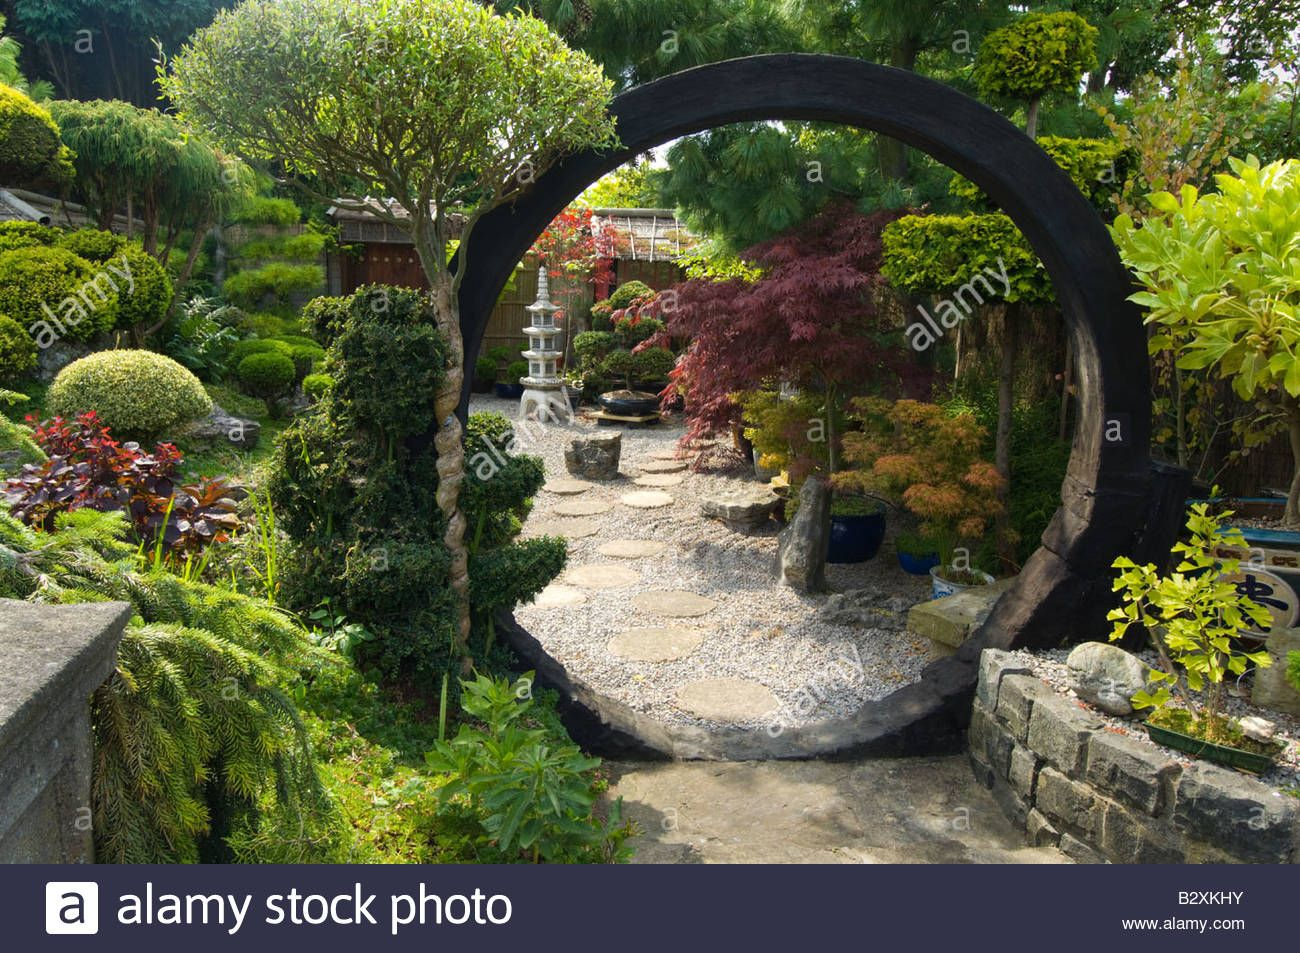 Japanese style garden with moon gate rocks shrubs and ...